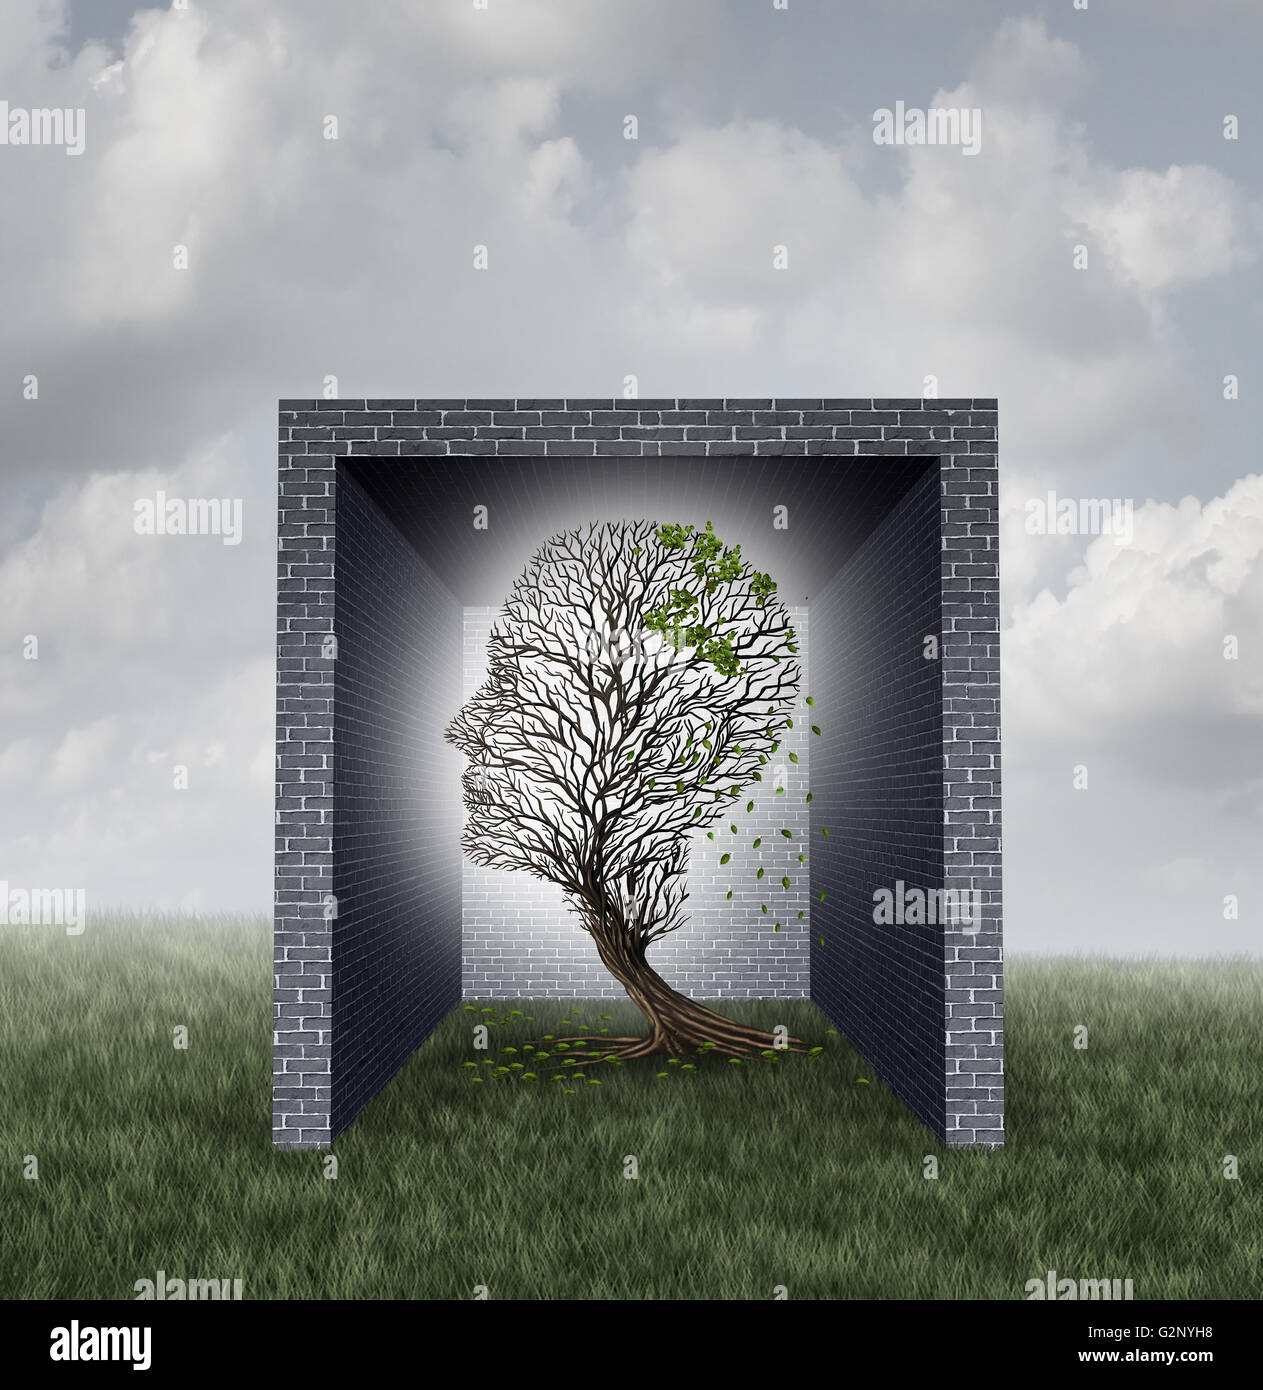 Emotional walls psychological concept as a tree shaped as a human head losing leaves inside a brick wall box as - Stock Image